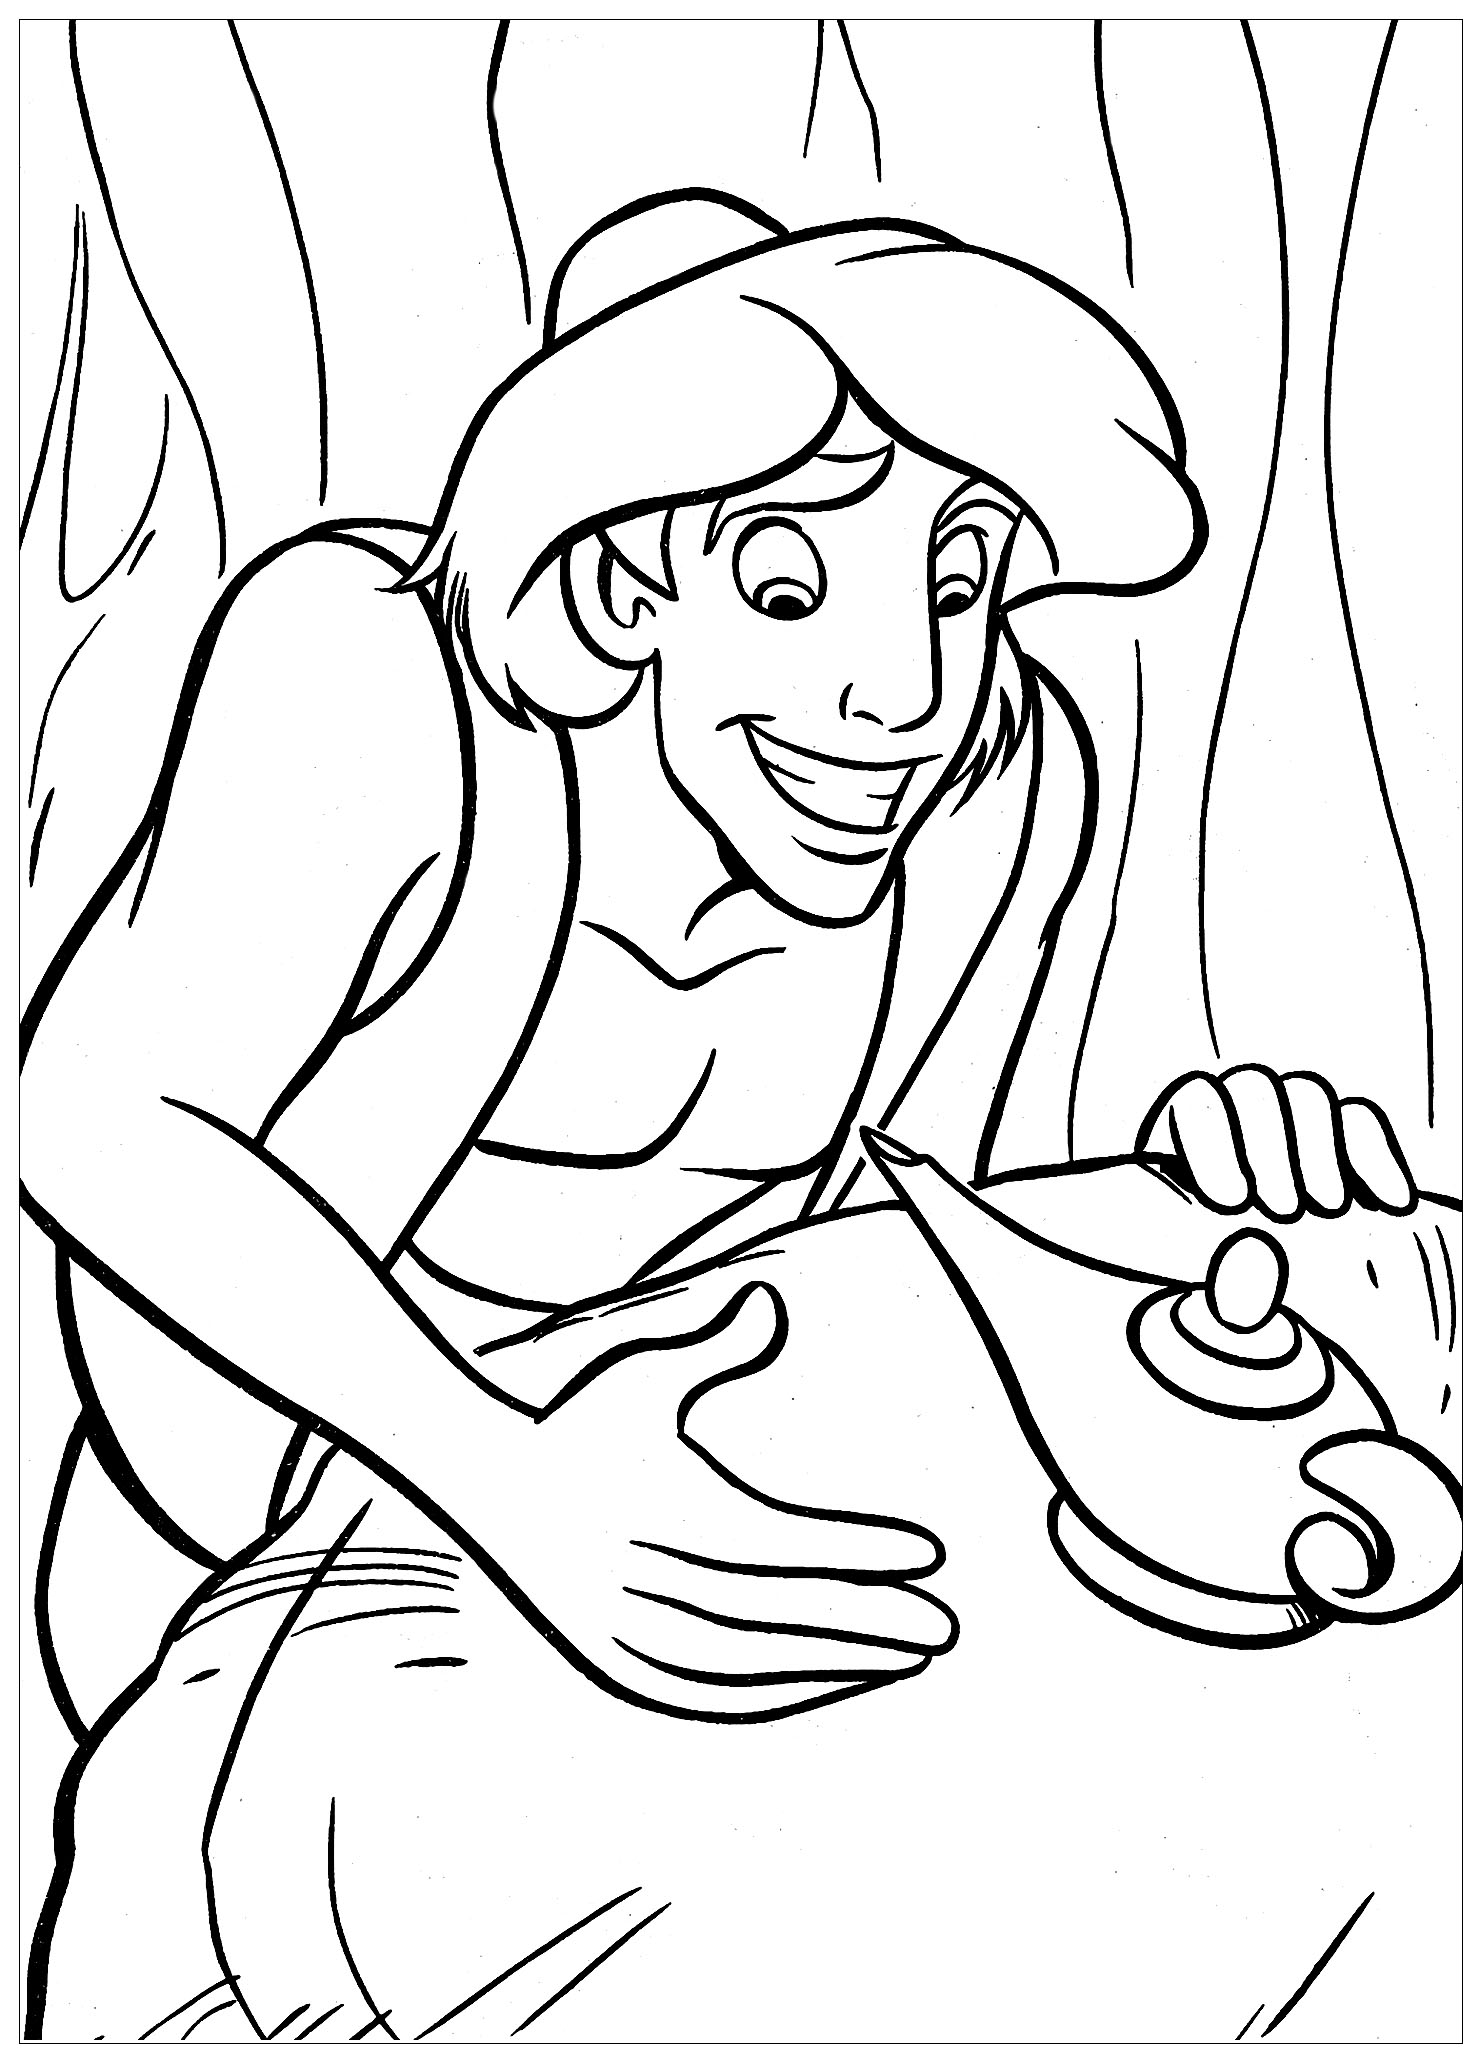 Free Printable Jasmine Coloring Pages For Kids - Best Coloring ... | 2063x1482